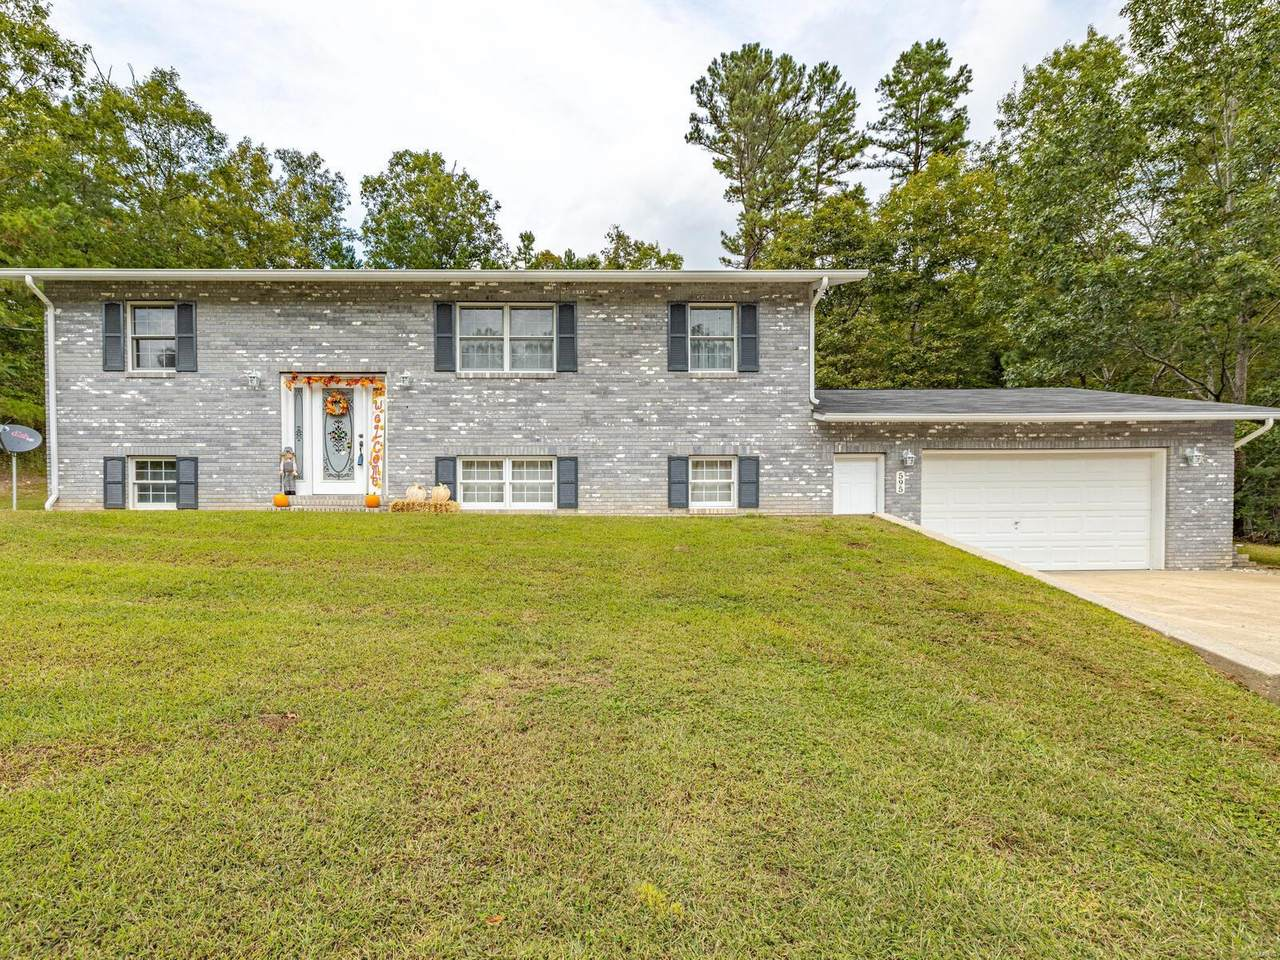 595 Whippet Drive - Photo 1